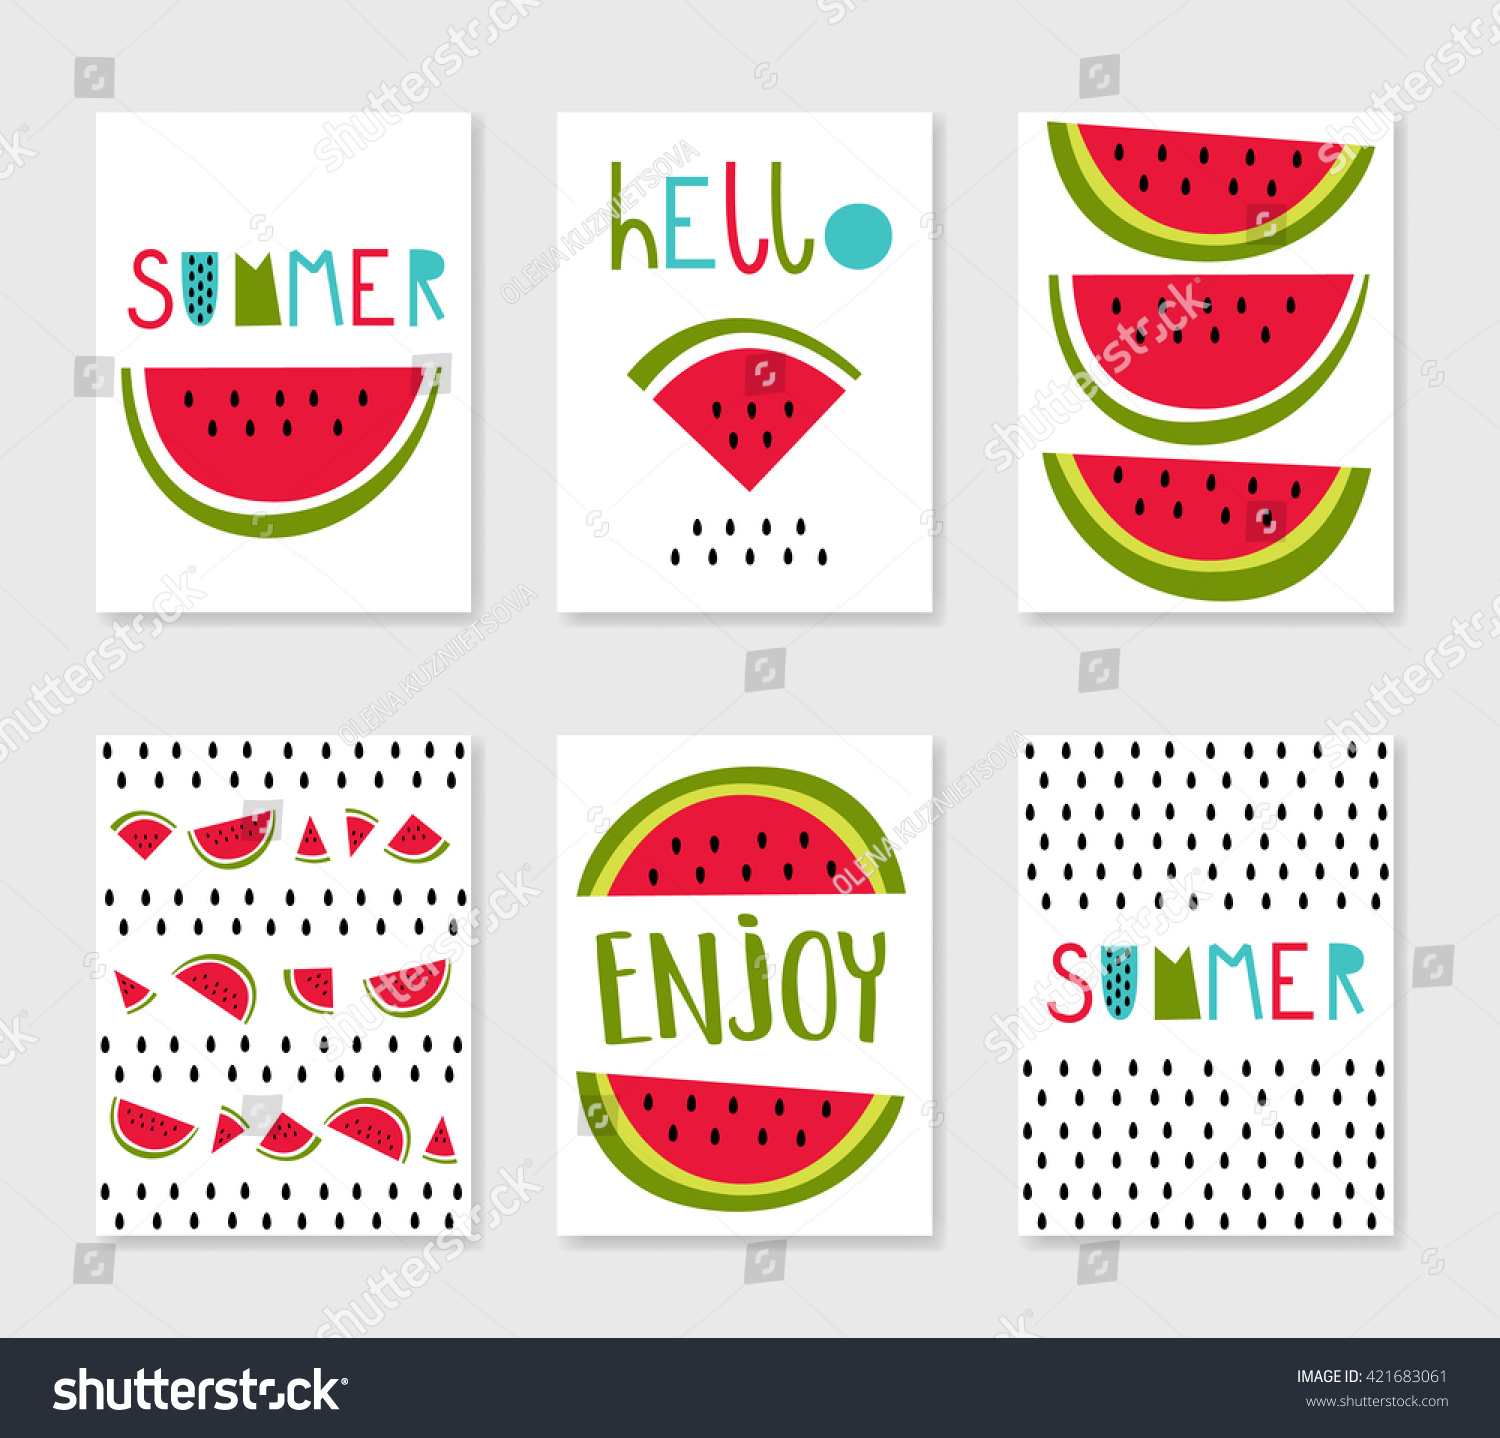 Hello summer Set of cute creative card templates with watermelons Hand Drawn For party invitations scrapbook print on T-shirts and bags